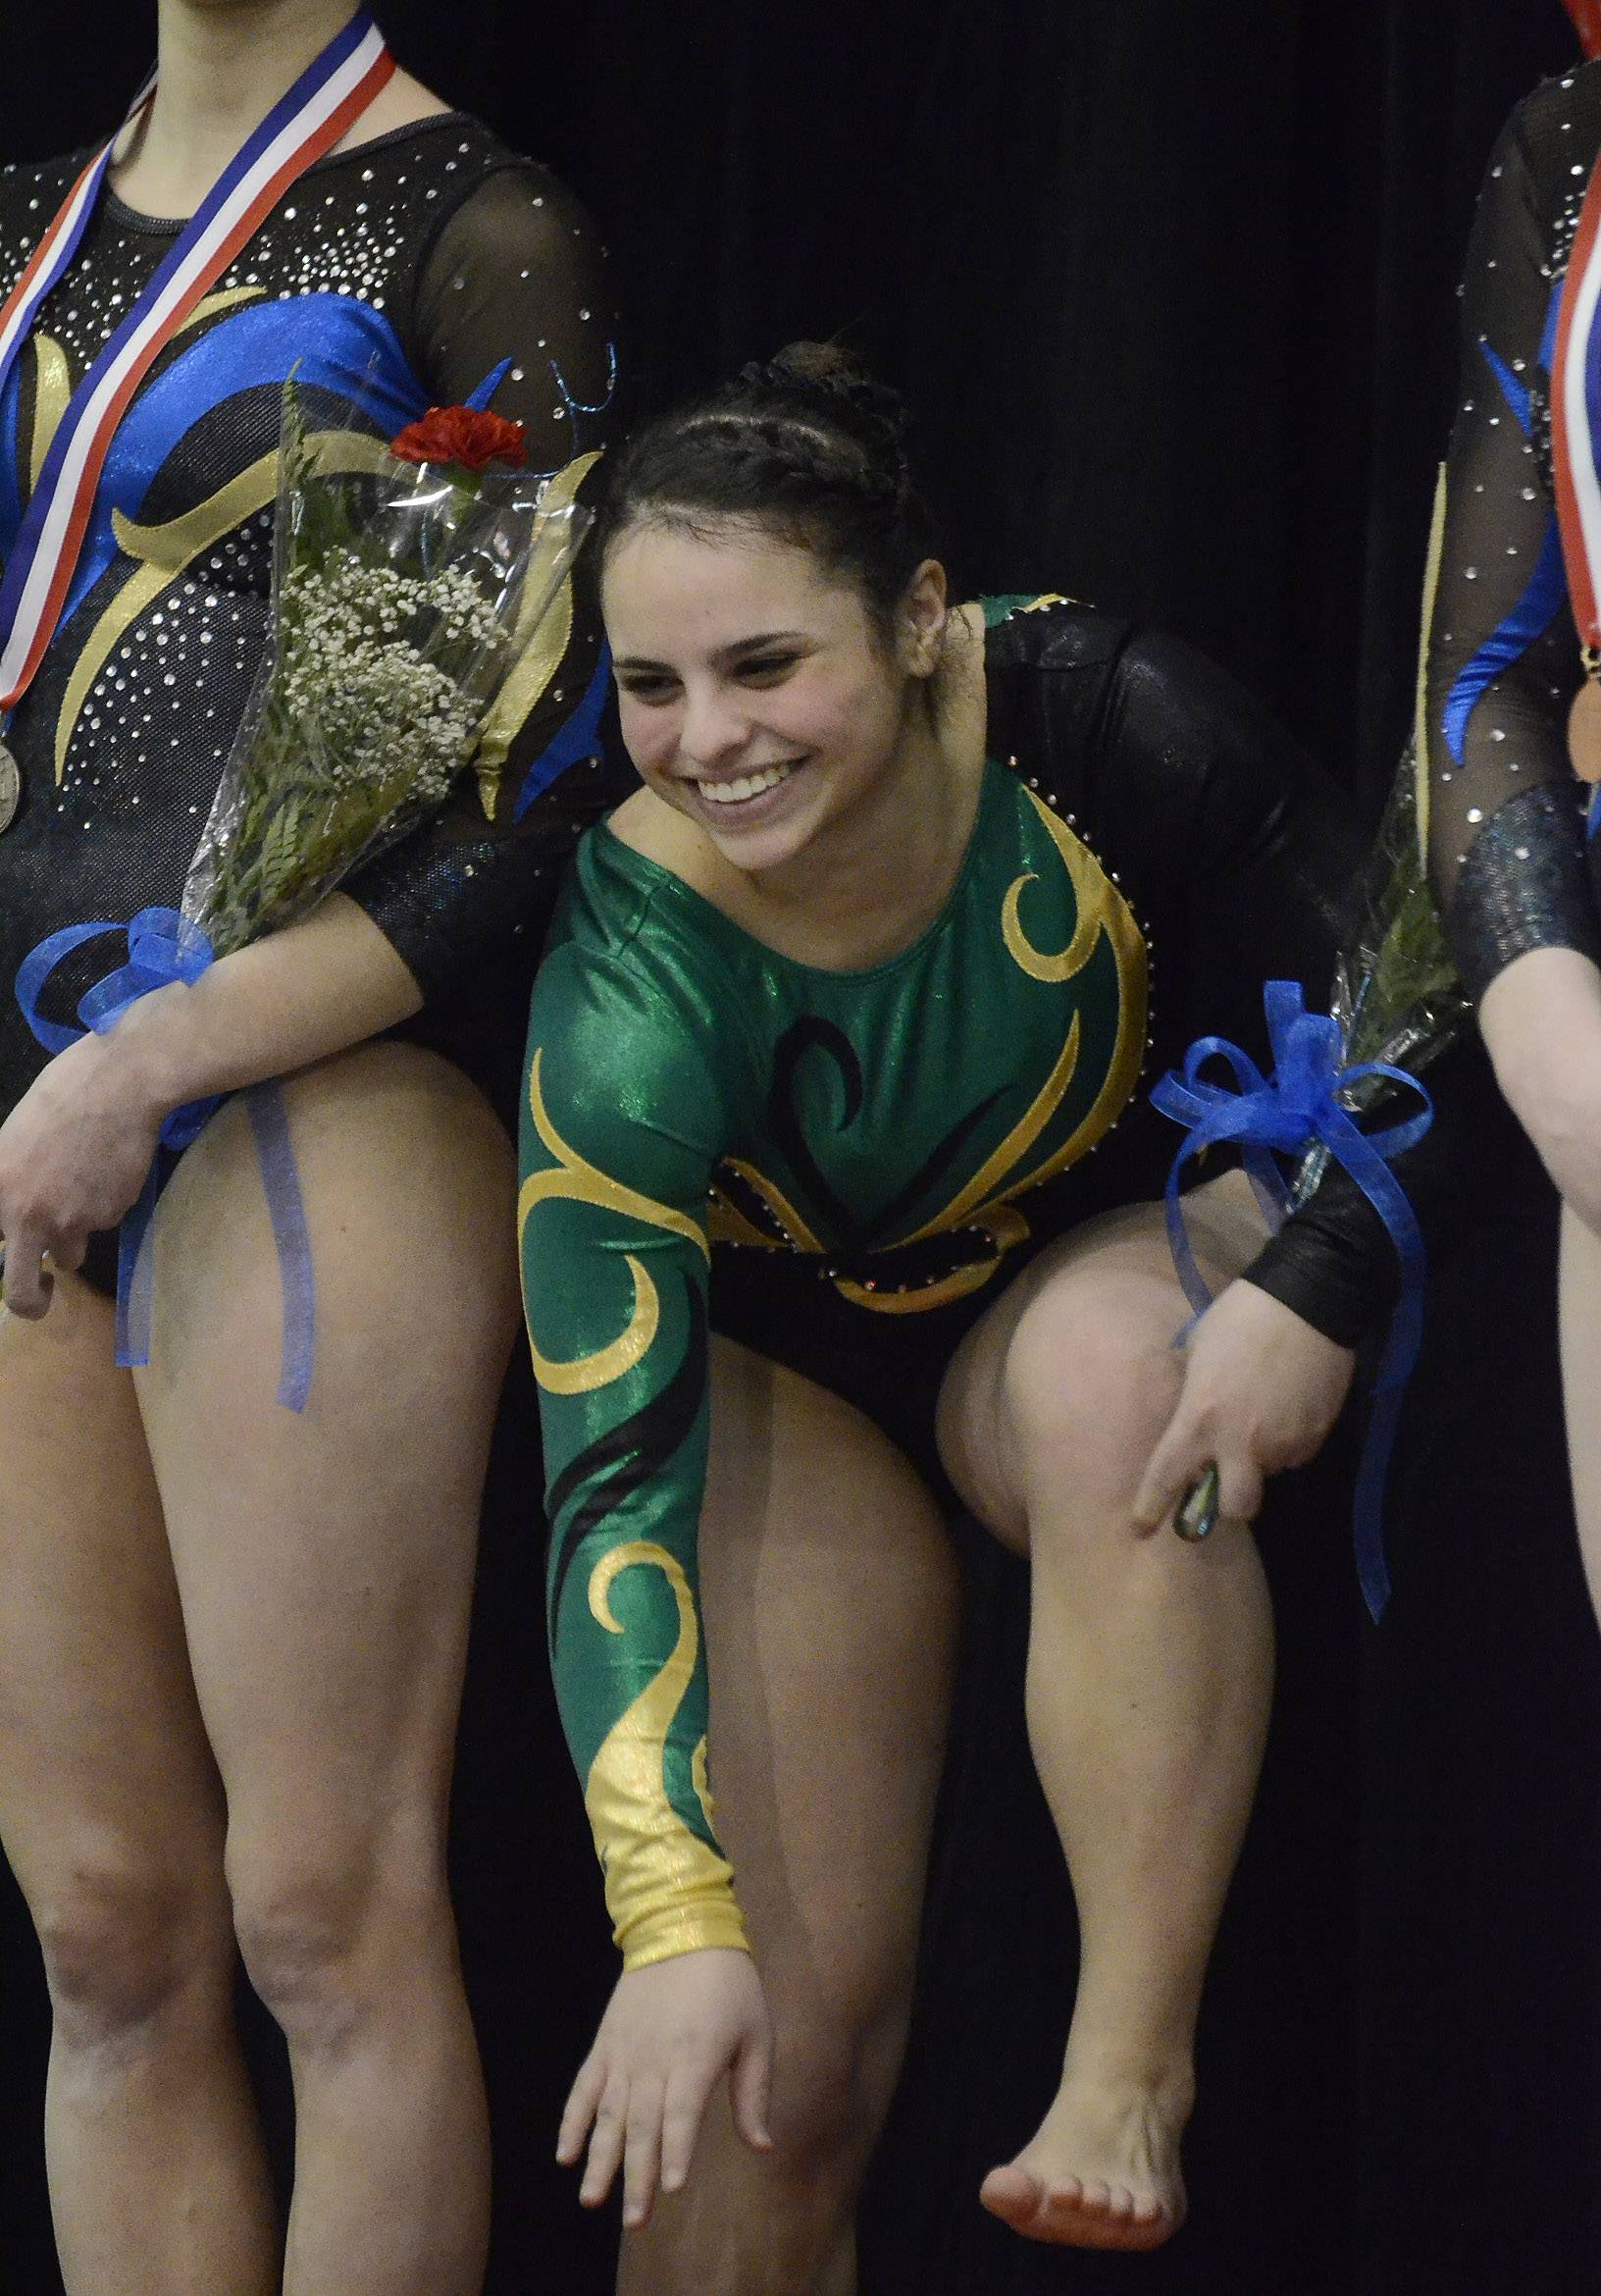 Alyssa Weisberg of Stevenson High School crawls up the podium after capturing first in the Balance Beam during State Girls Gymnastics Saturday at Palatine High School.